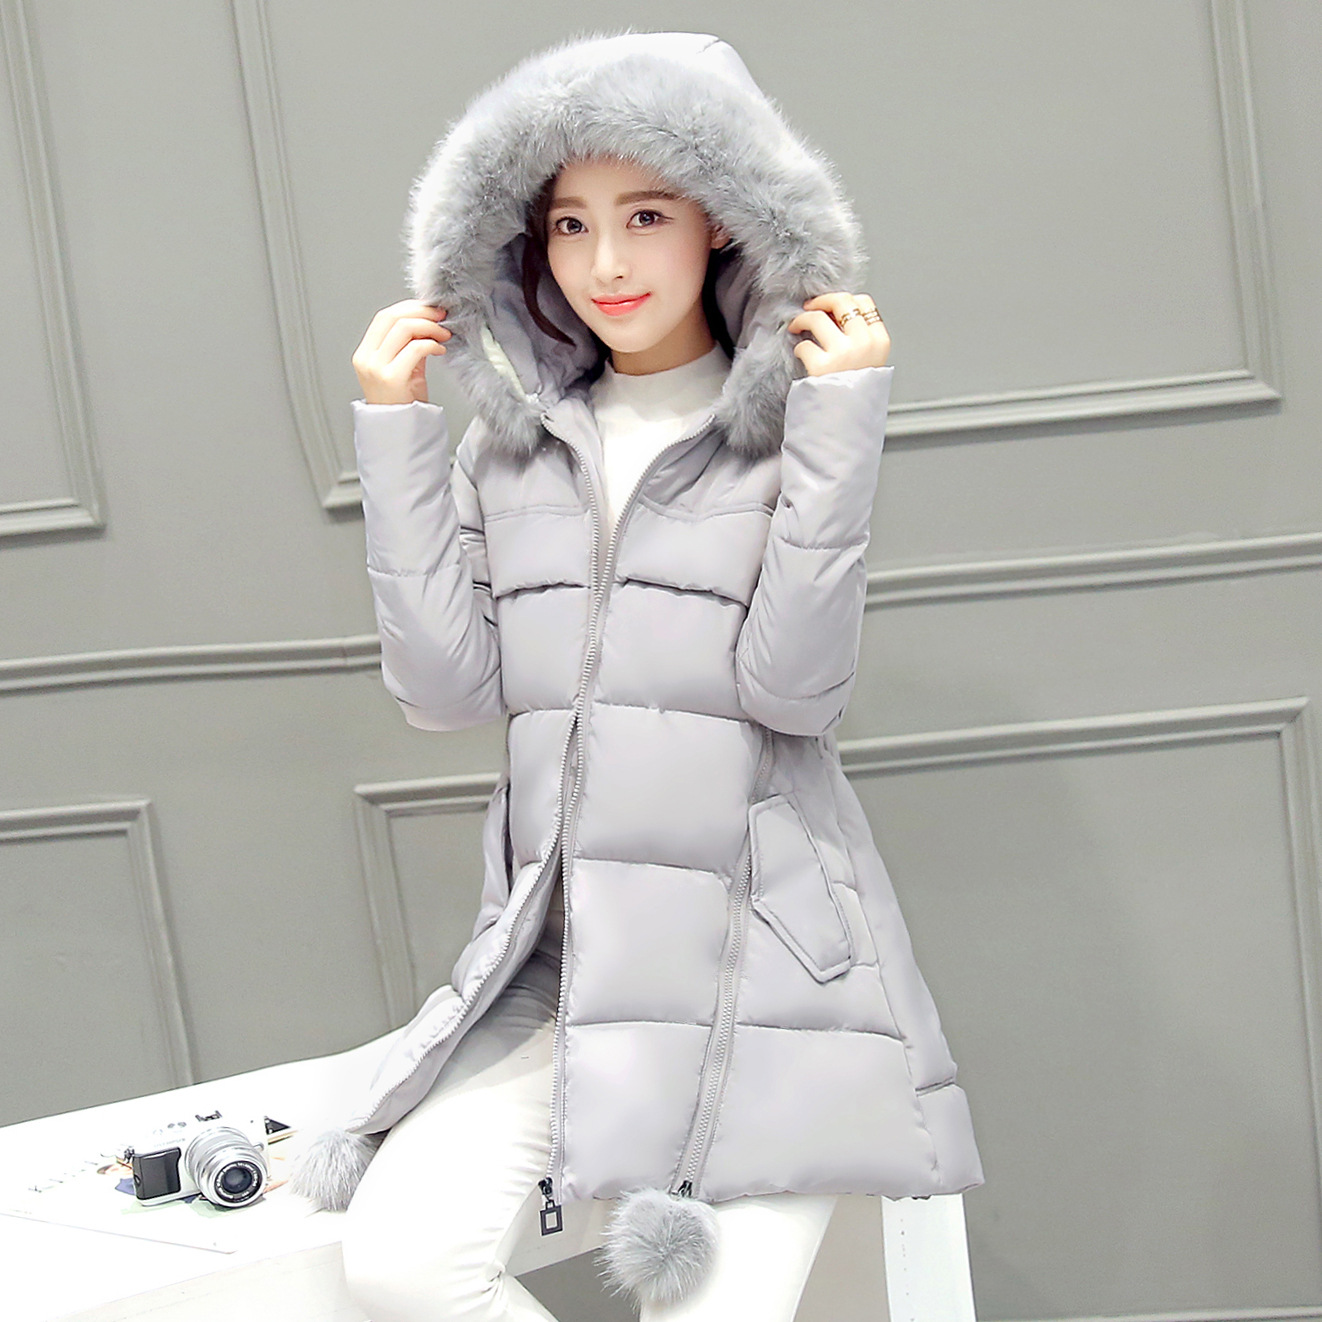 Women's Winter Jacket 2016 Female Hooded Coat With Fur Slim Long High-quality Padded Down Cotton Casual Fashion Women Parka